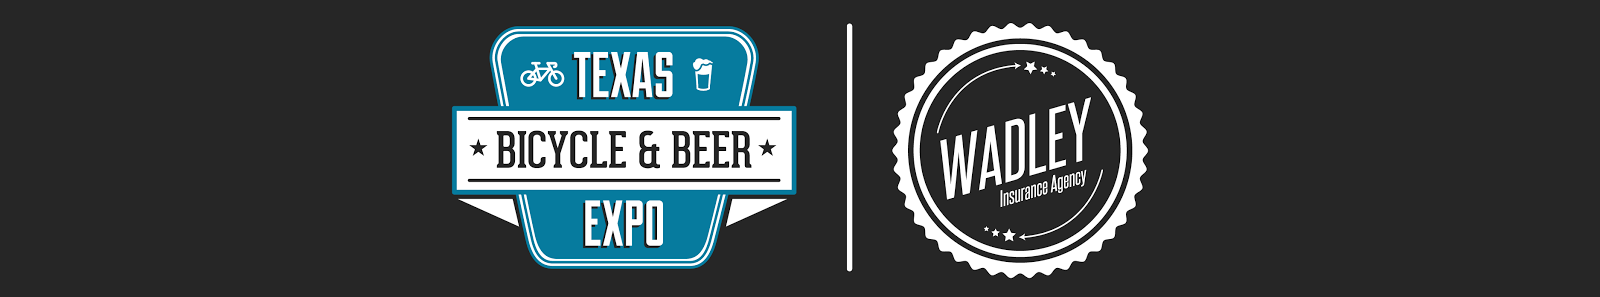 Texas Bicycle and Beer Expo, Dallas, TX    2016 dates coming soon!